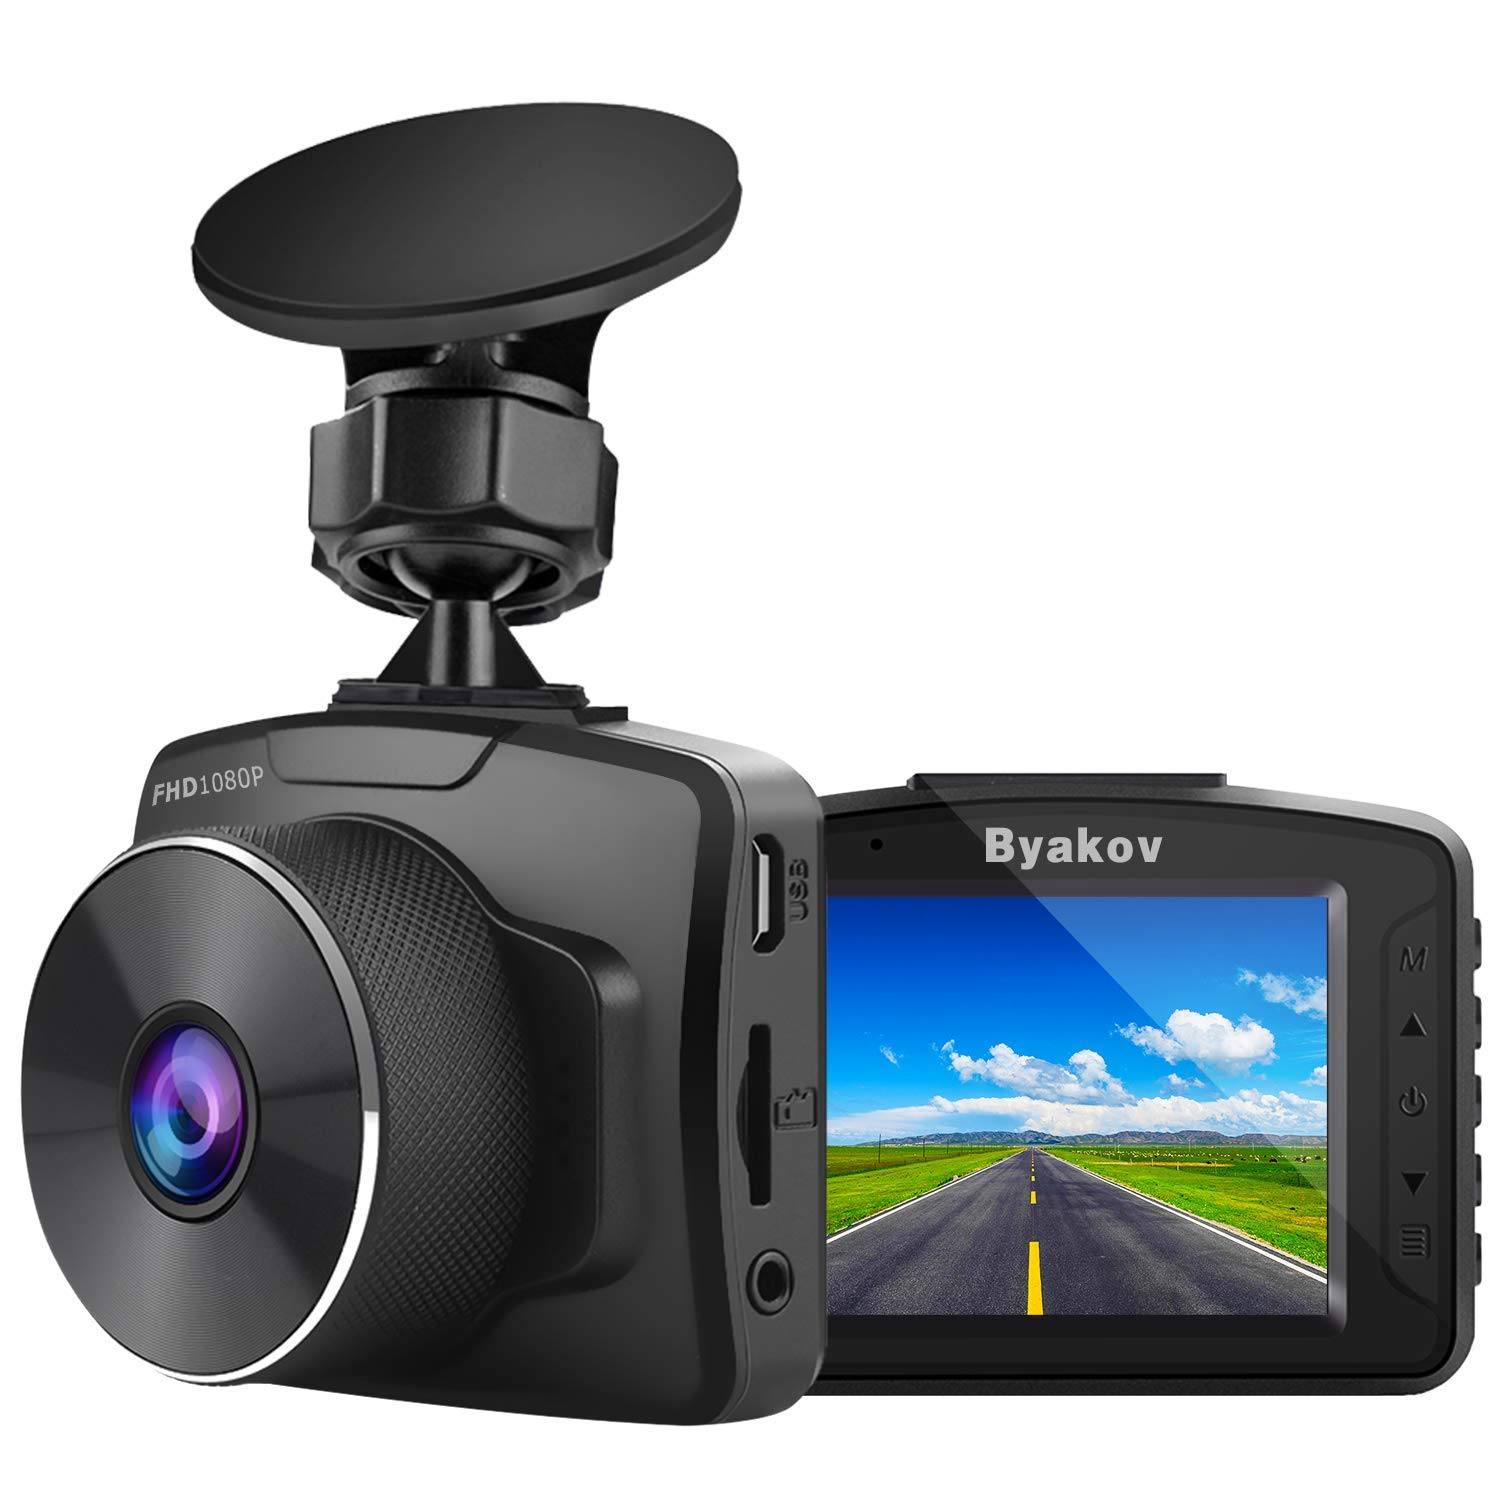 Byakov Upgraded Dash Cam, 2 inch LCD Screen 1080P Full HD Dash Camera for Cars with G-Sensor, WDR, Loop Recording, 170°Wide Angle, Night Vision, Motion Detection